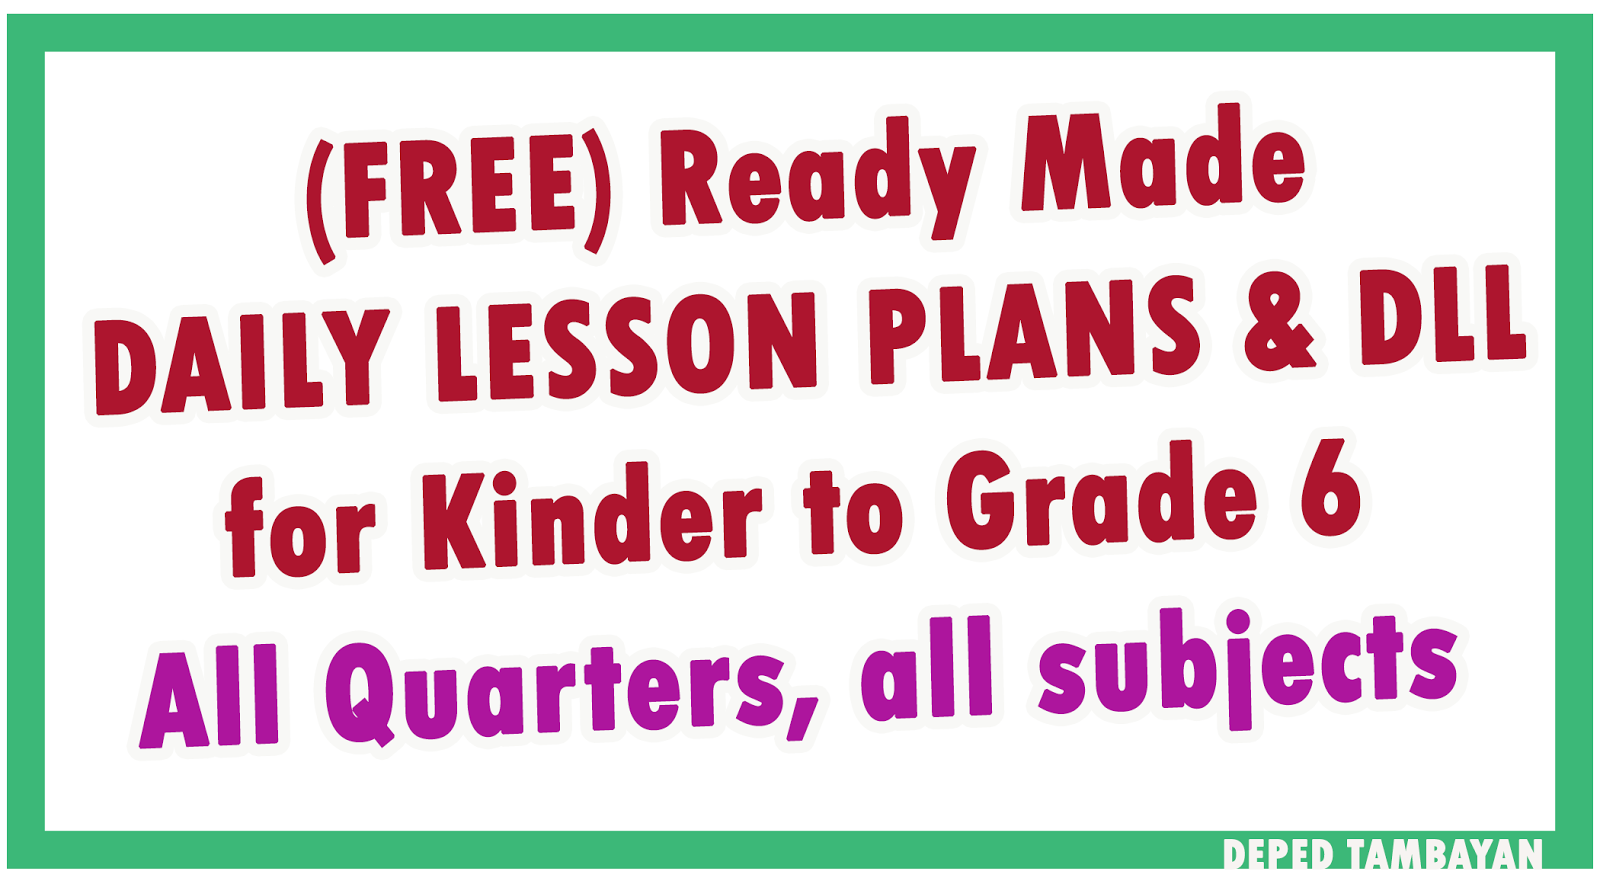 Ready Made Lesson Plan & DLL